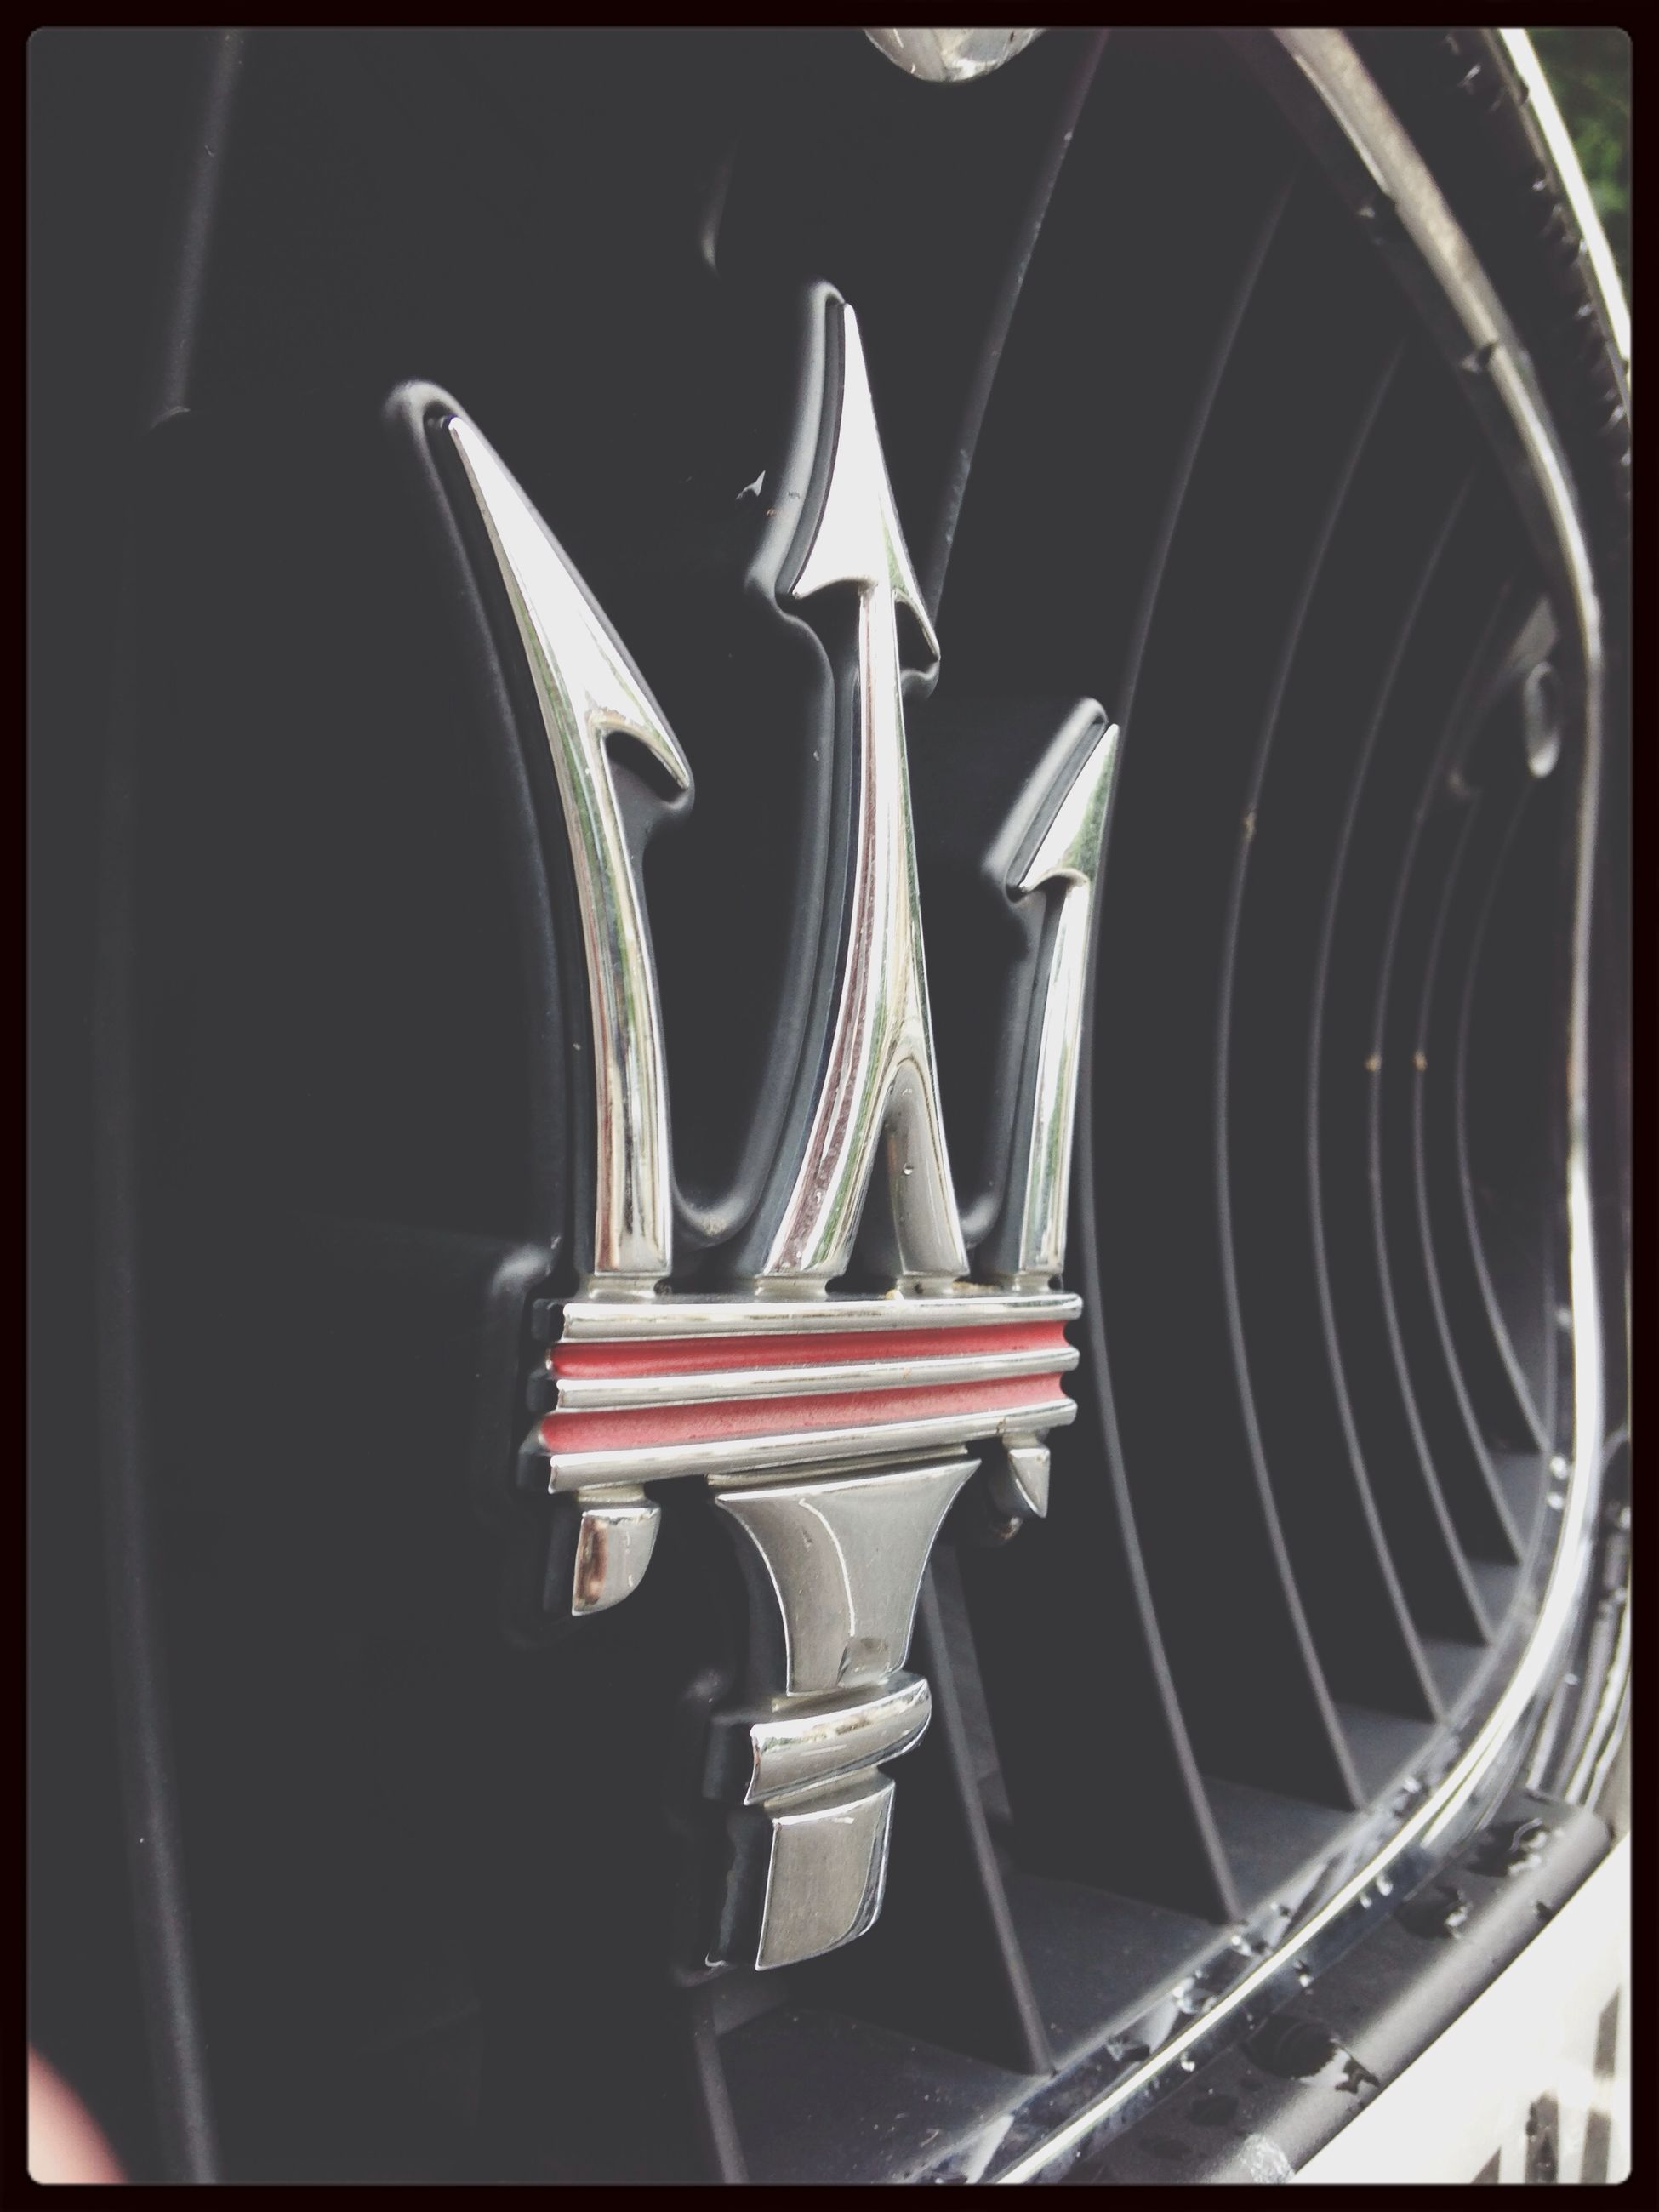 transfer print, indoors, auto post production filter, metal, music, close-up, technology, arts culture and entertainment, equipment, transportation, machine part, old-fashioned, retro styled, musical instrument, metallic, in a row, no people, part of, land vehicle, still life